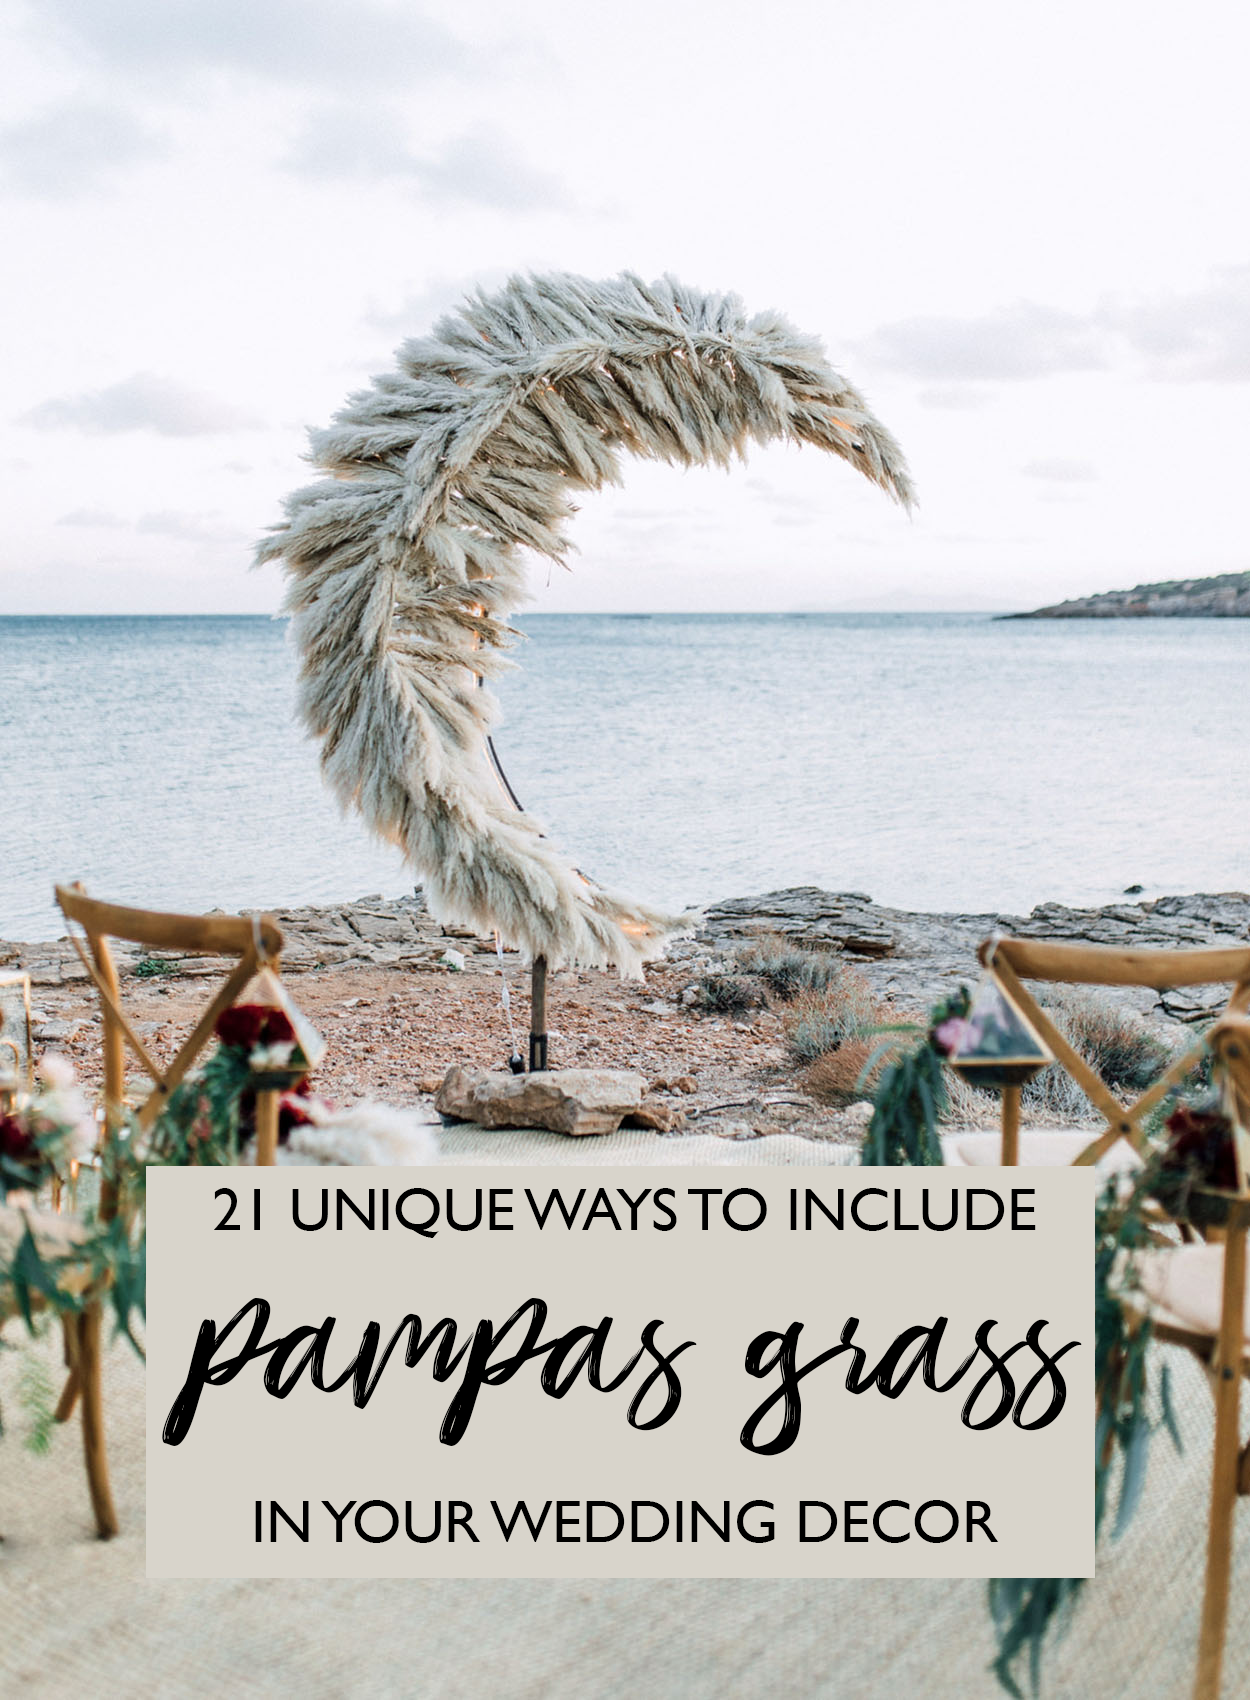 c48865b7dfba 21 Unique Ways to Include Pampas Grass in Your Wedding Decor - Green ...